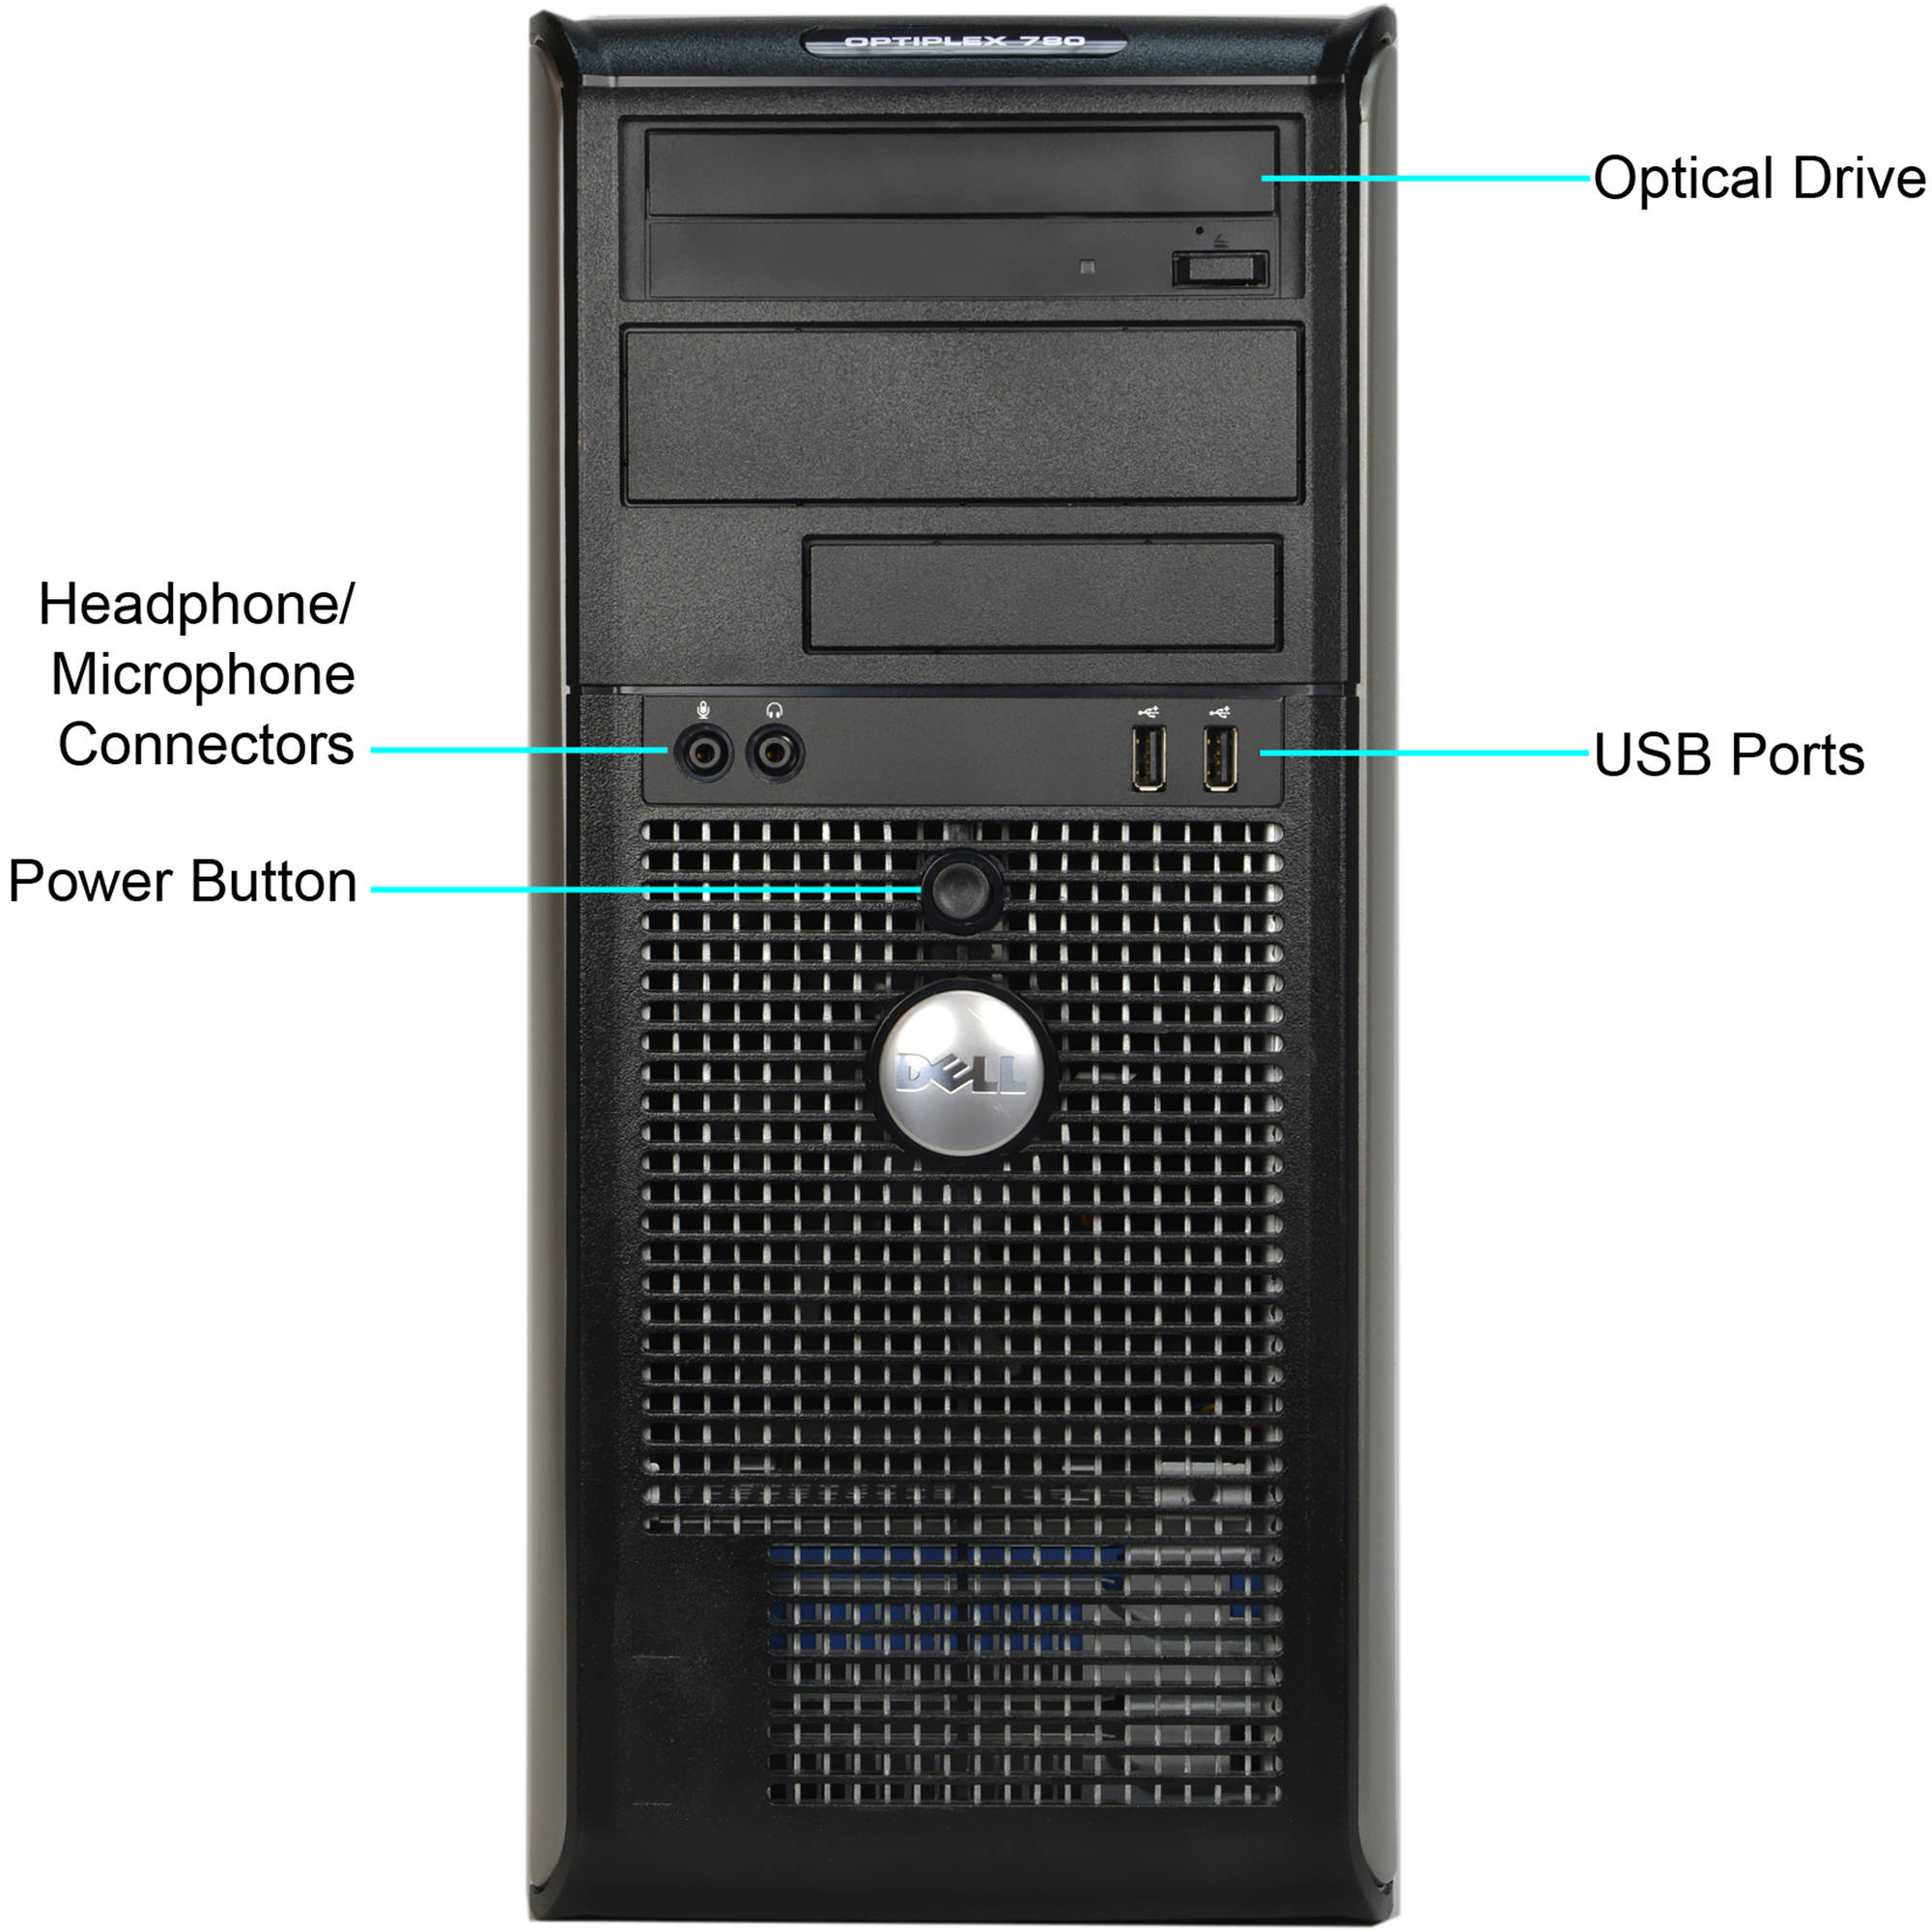 dell md3200 quick start guide